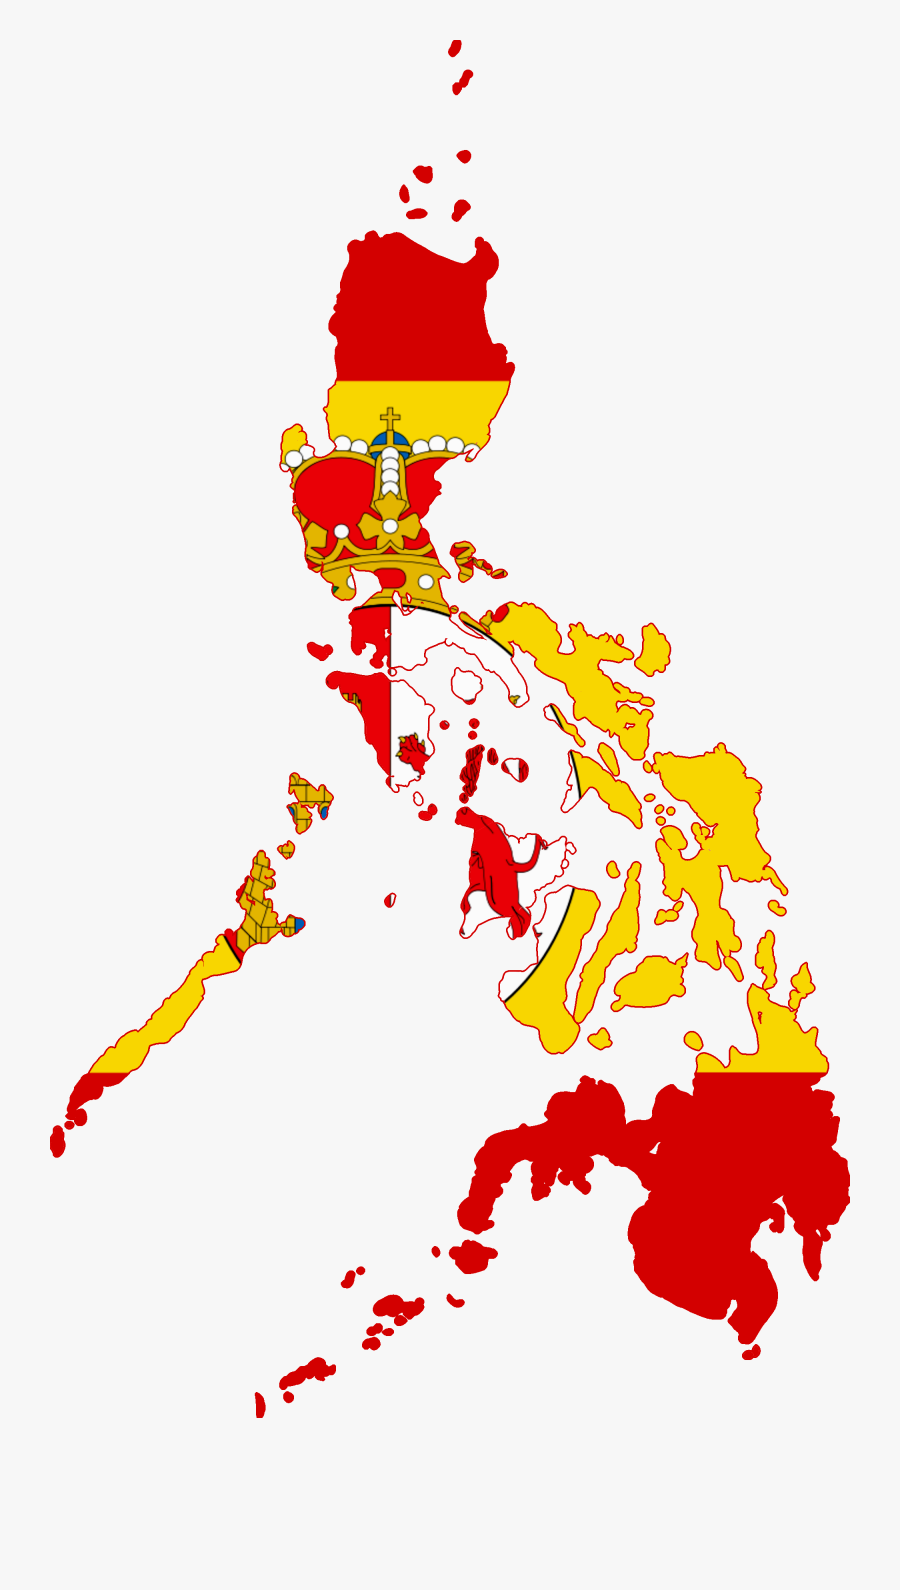 Transparent Spanish Flag Png - Flag Map Of The Philippines, Transparent Clipart